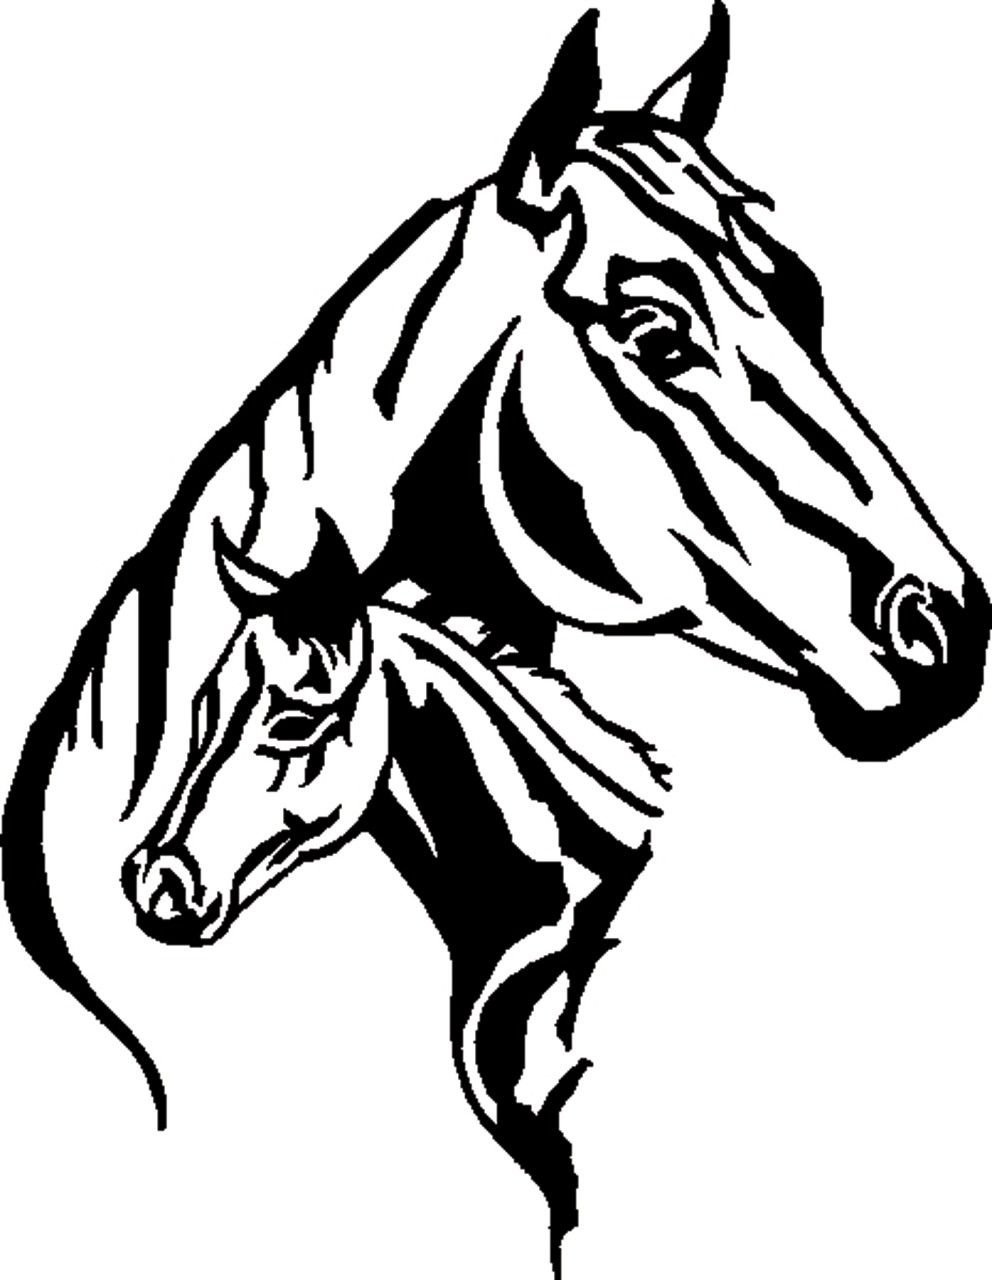 quarter-horse-head-silhouette-329299.jpg | Working with ...